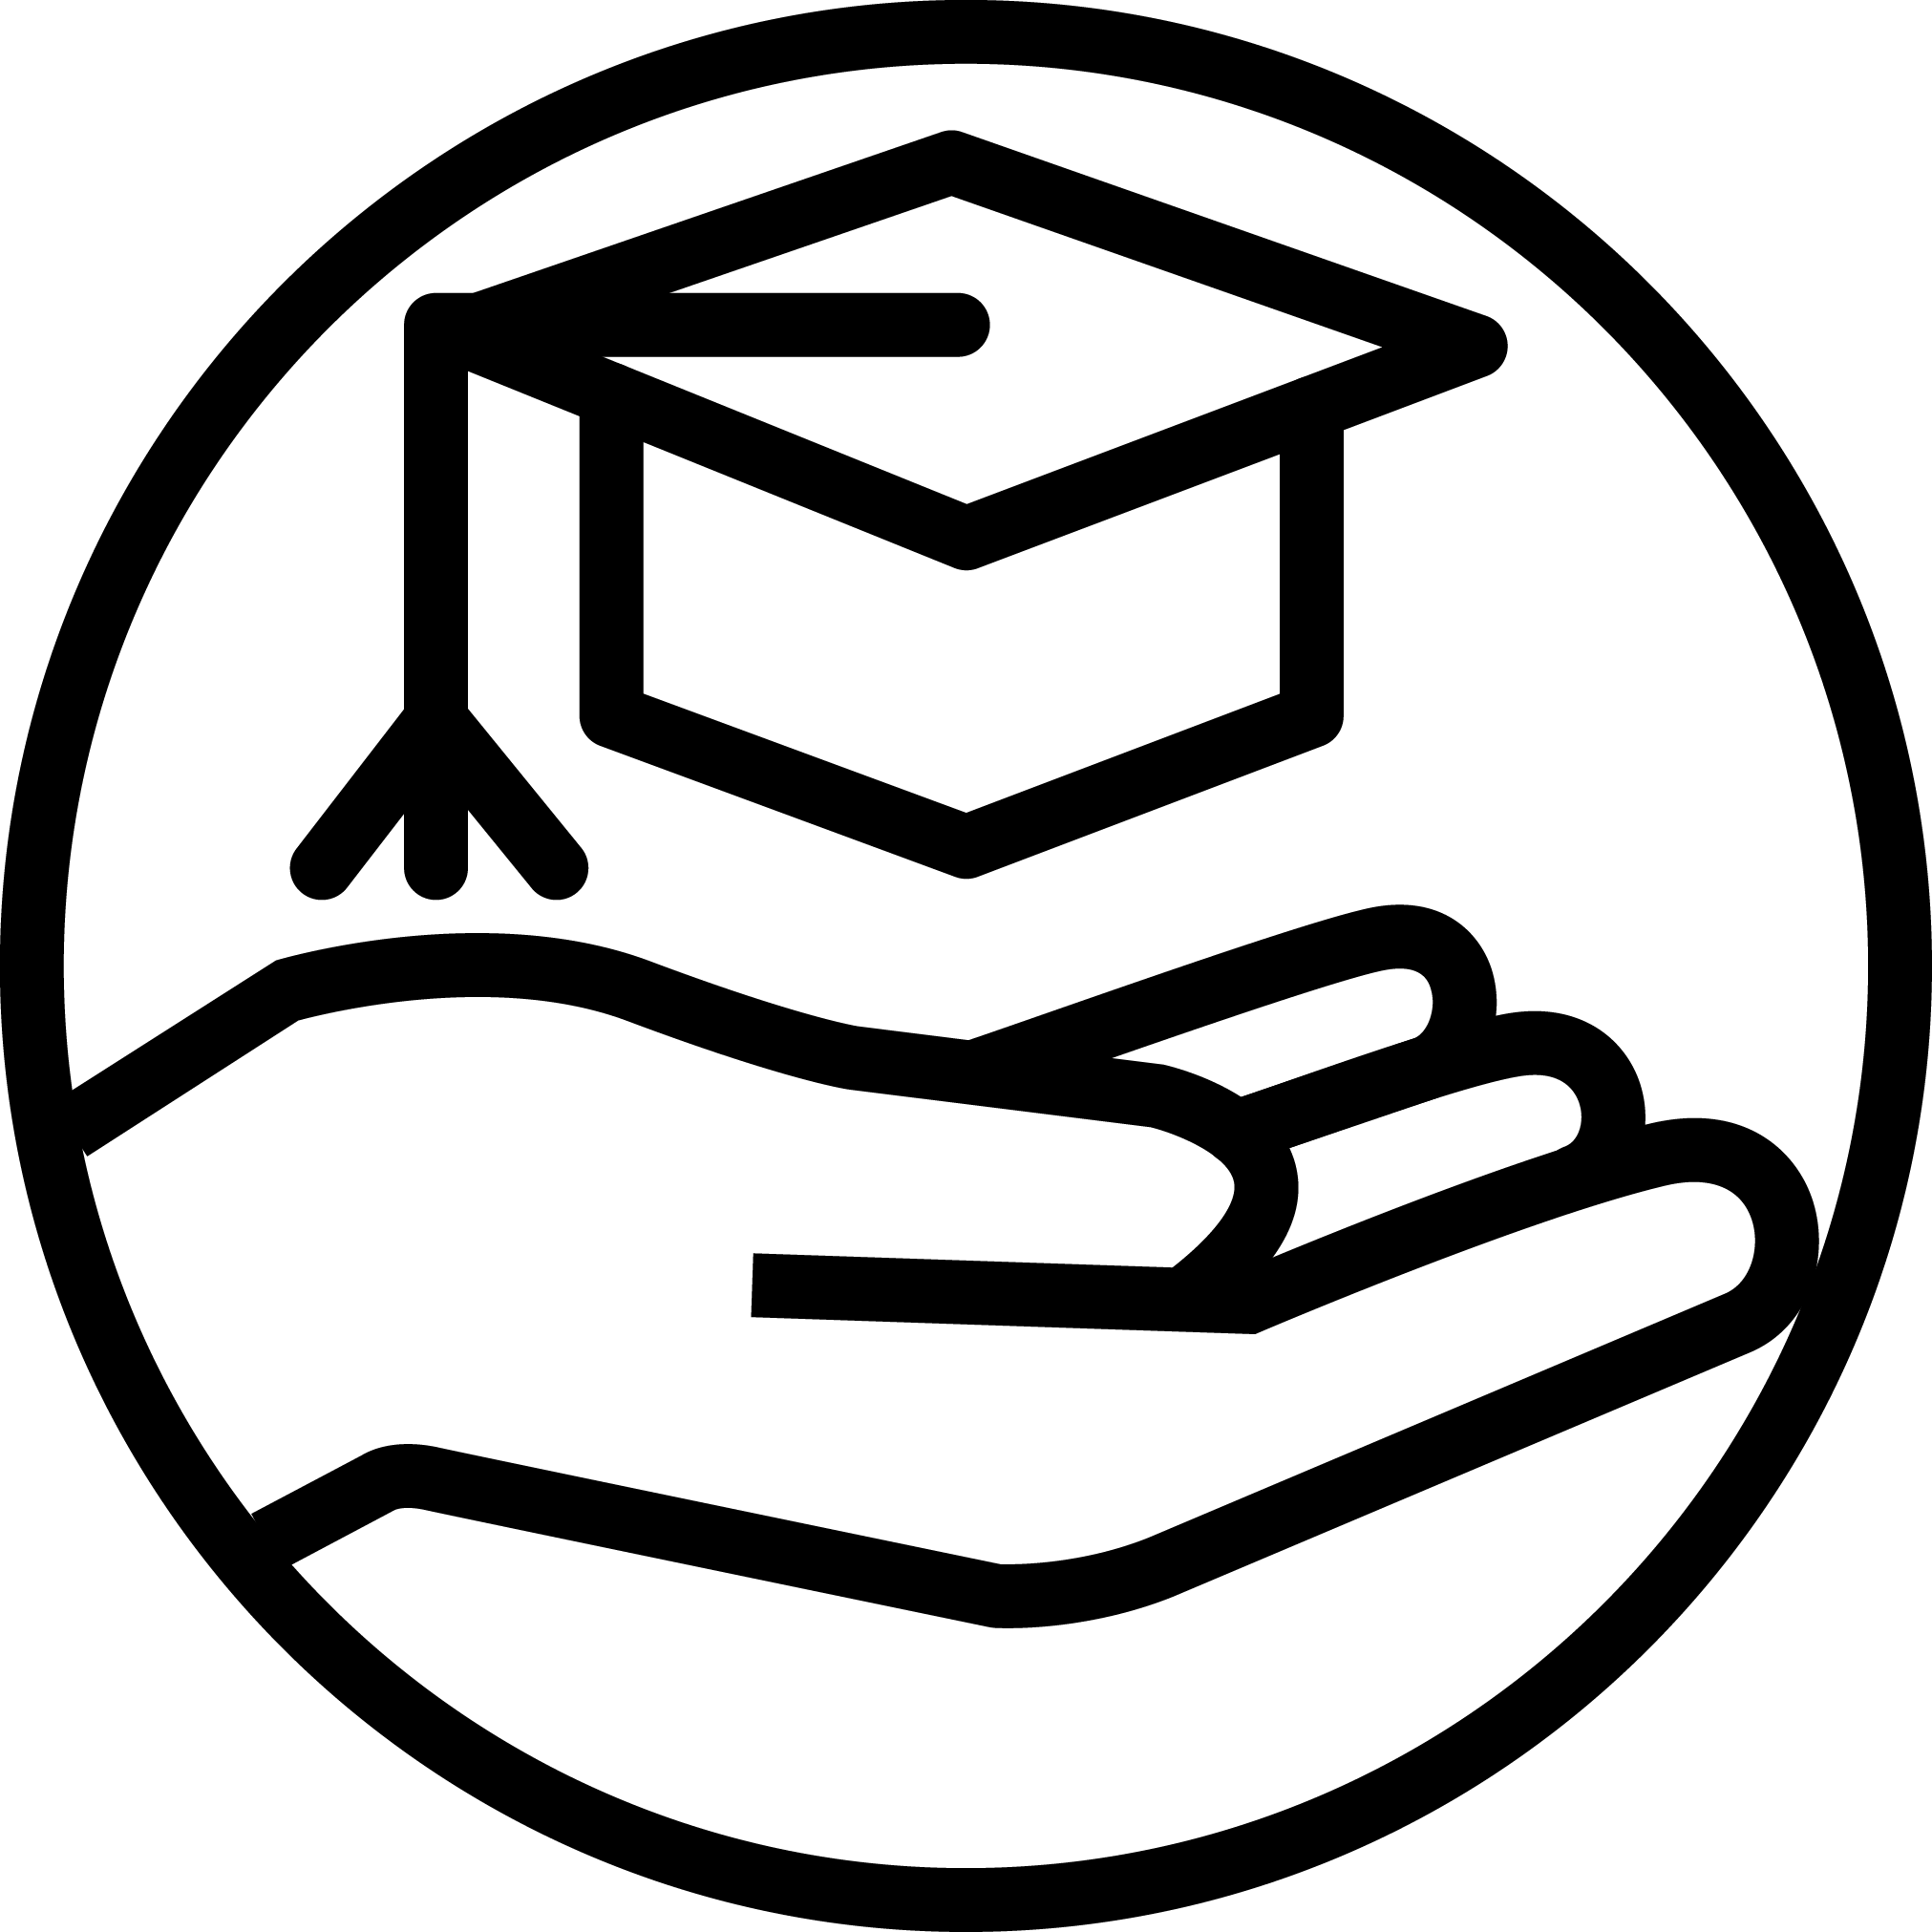 Icon of a hand outstretched with a graduation cap floating above it